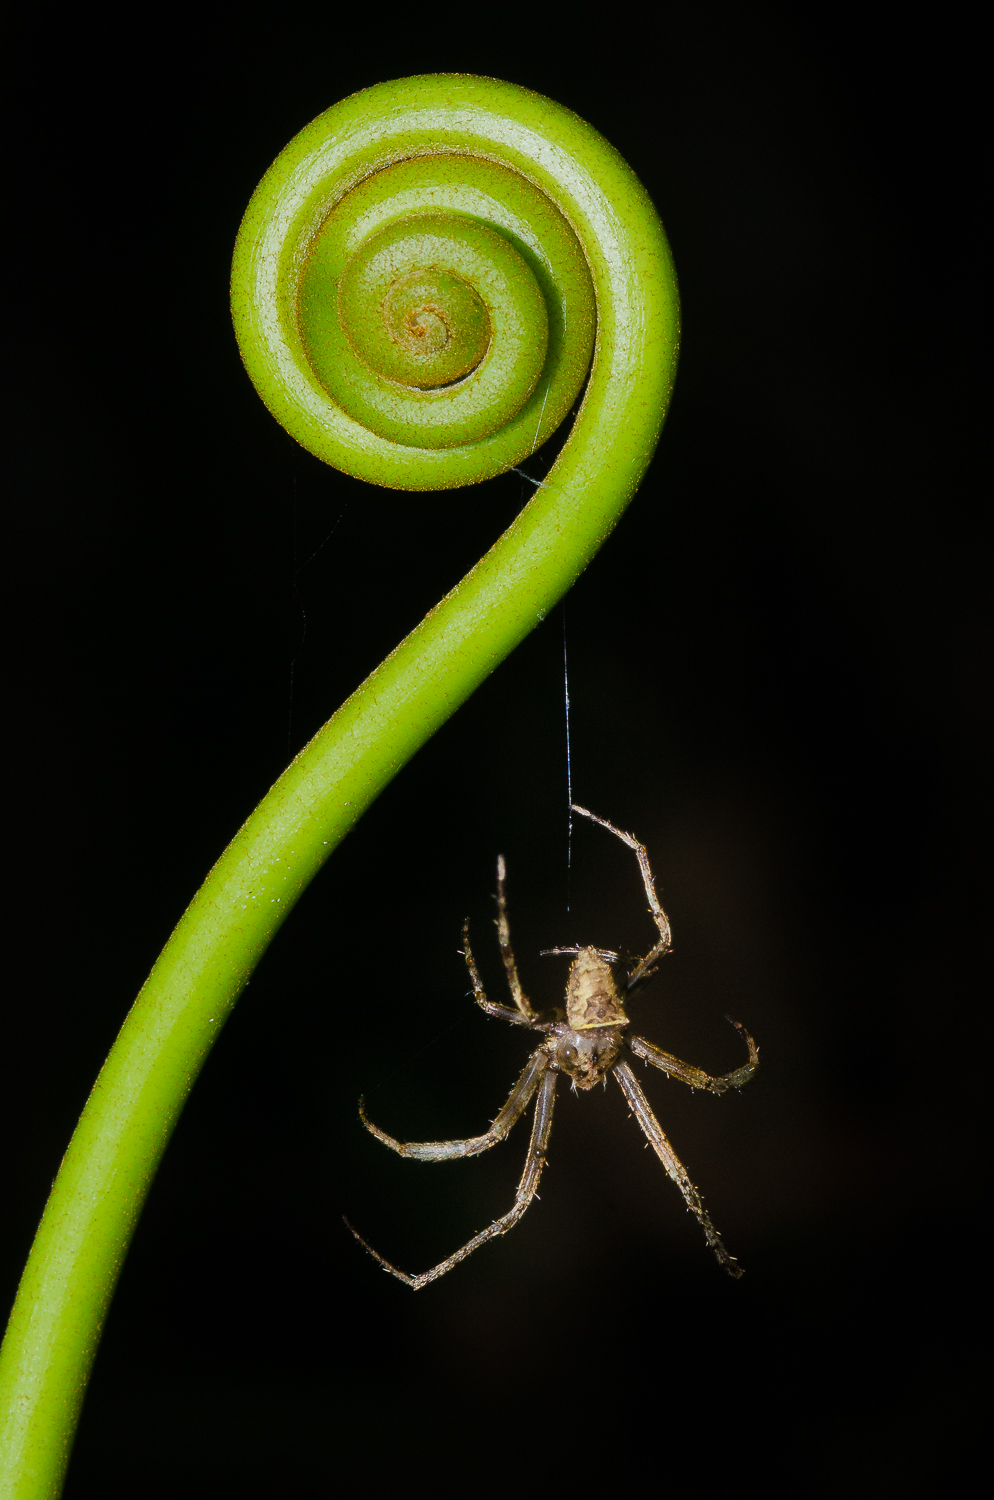 A spider rapelling from an uncoiled fern.